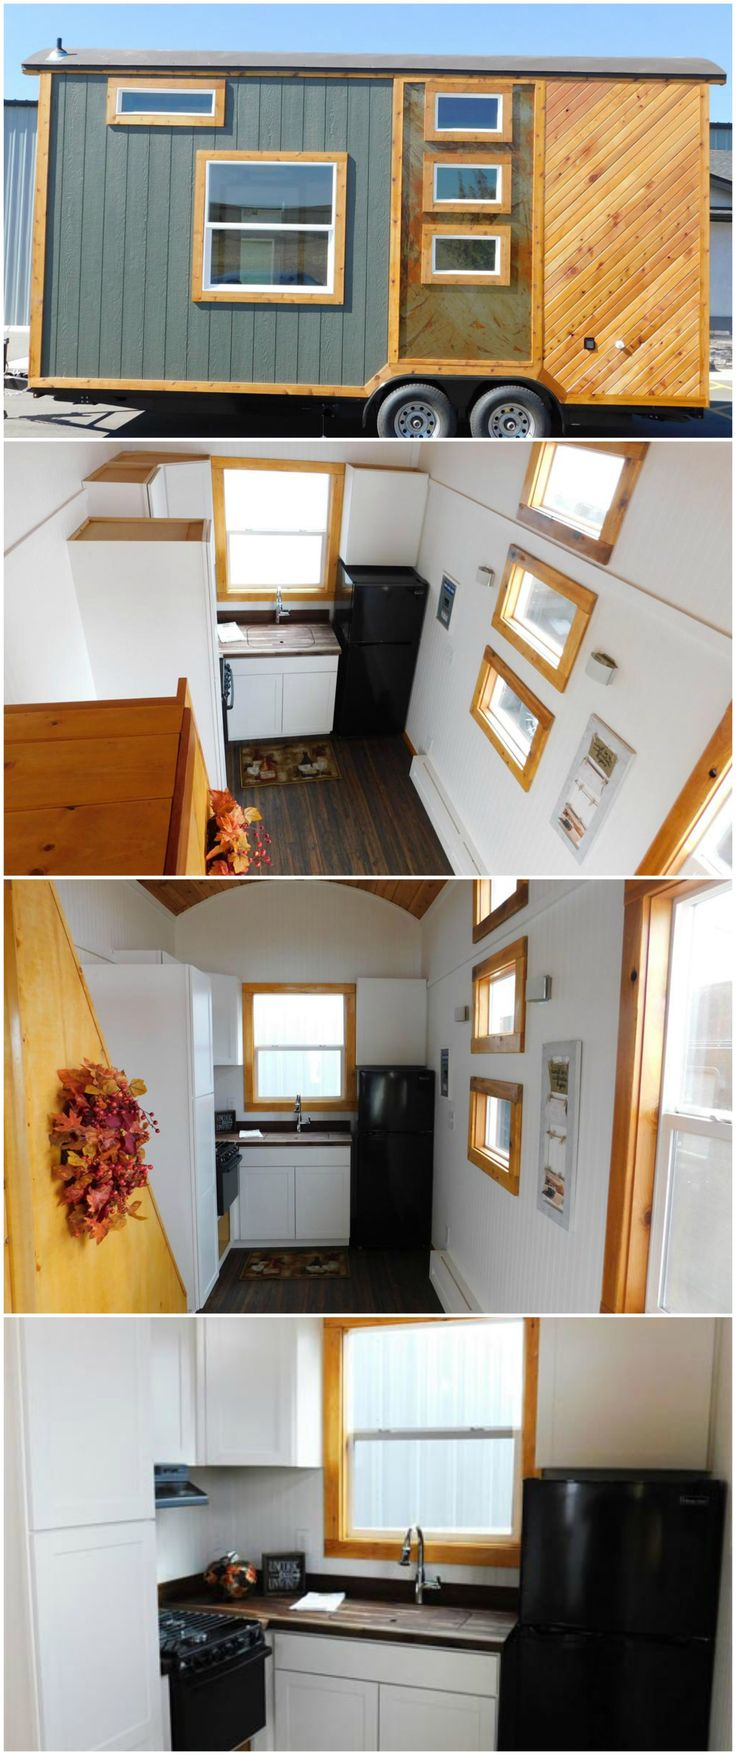 Pioneer is a lovely tiny house built by Tiny Idahomes.  The house features white bead board walls, pine ceiling, and pine trim. Warm Oak TrafficMaster one piece vinyl flooring was used throughout the house.  The kitchen features white Arcadia cabinets, butcher block countertops, an apartment style refrigerator, a stainless steel undermount sink, and a tall pantry cabinet.